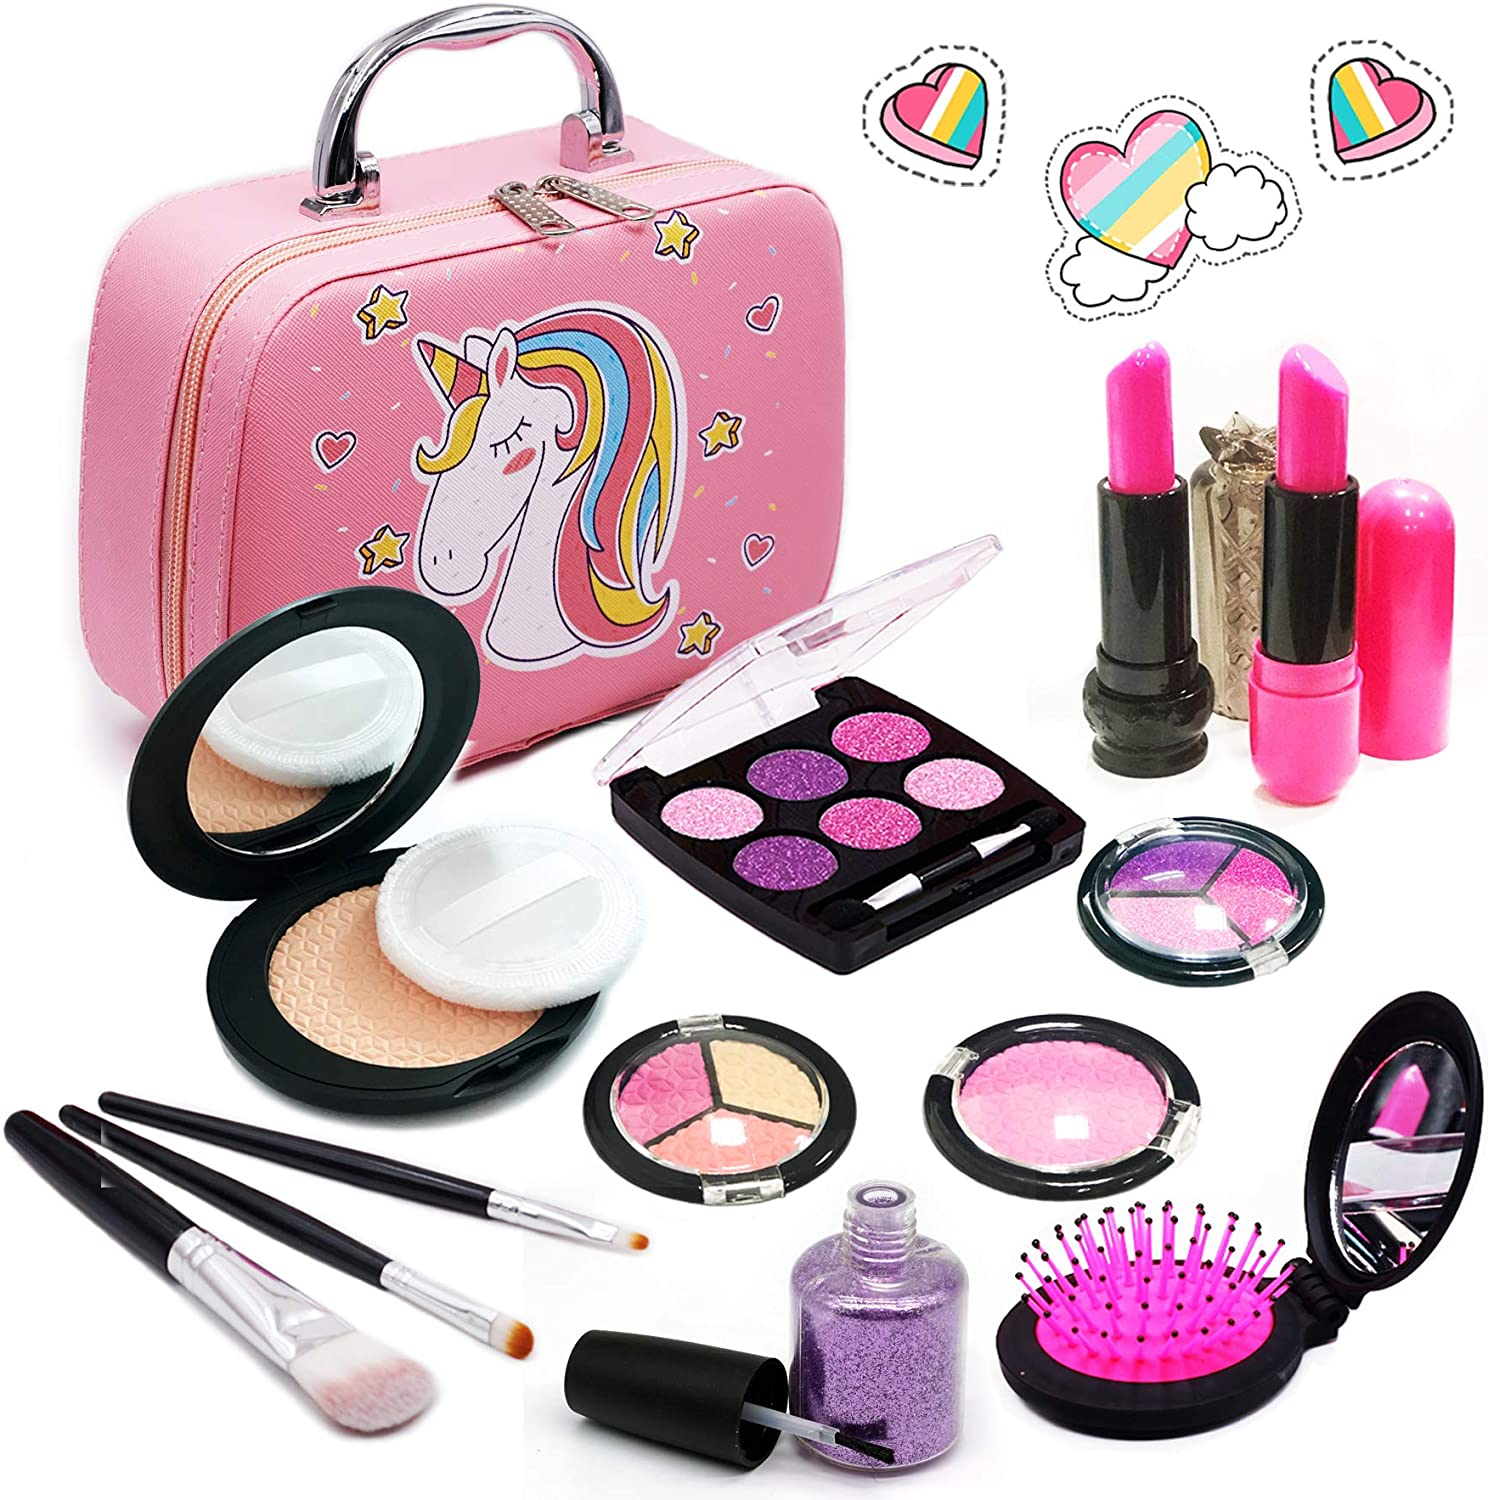 7 Tween Makeup Set for Girls Play Girls Makeup Kit for Kids Toysical Kids Makeup Kit for Girls 6 10 Year Old Children 8 Non Toxic Top Birthday for Ages 5 9